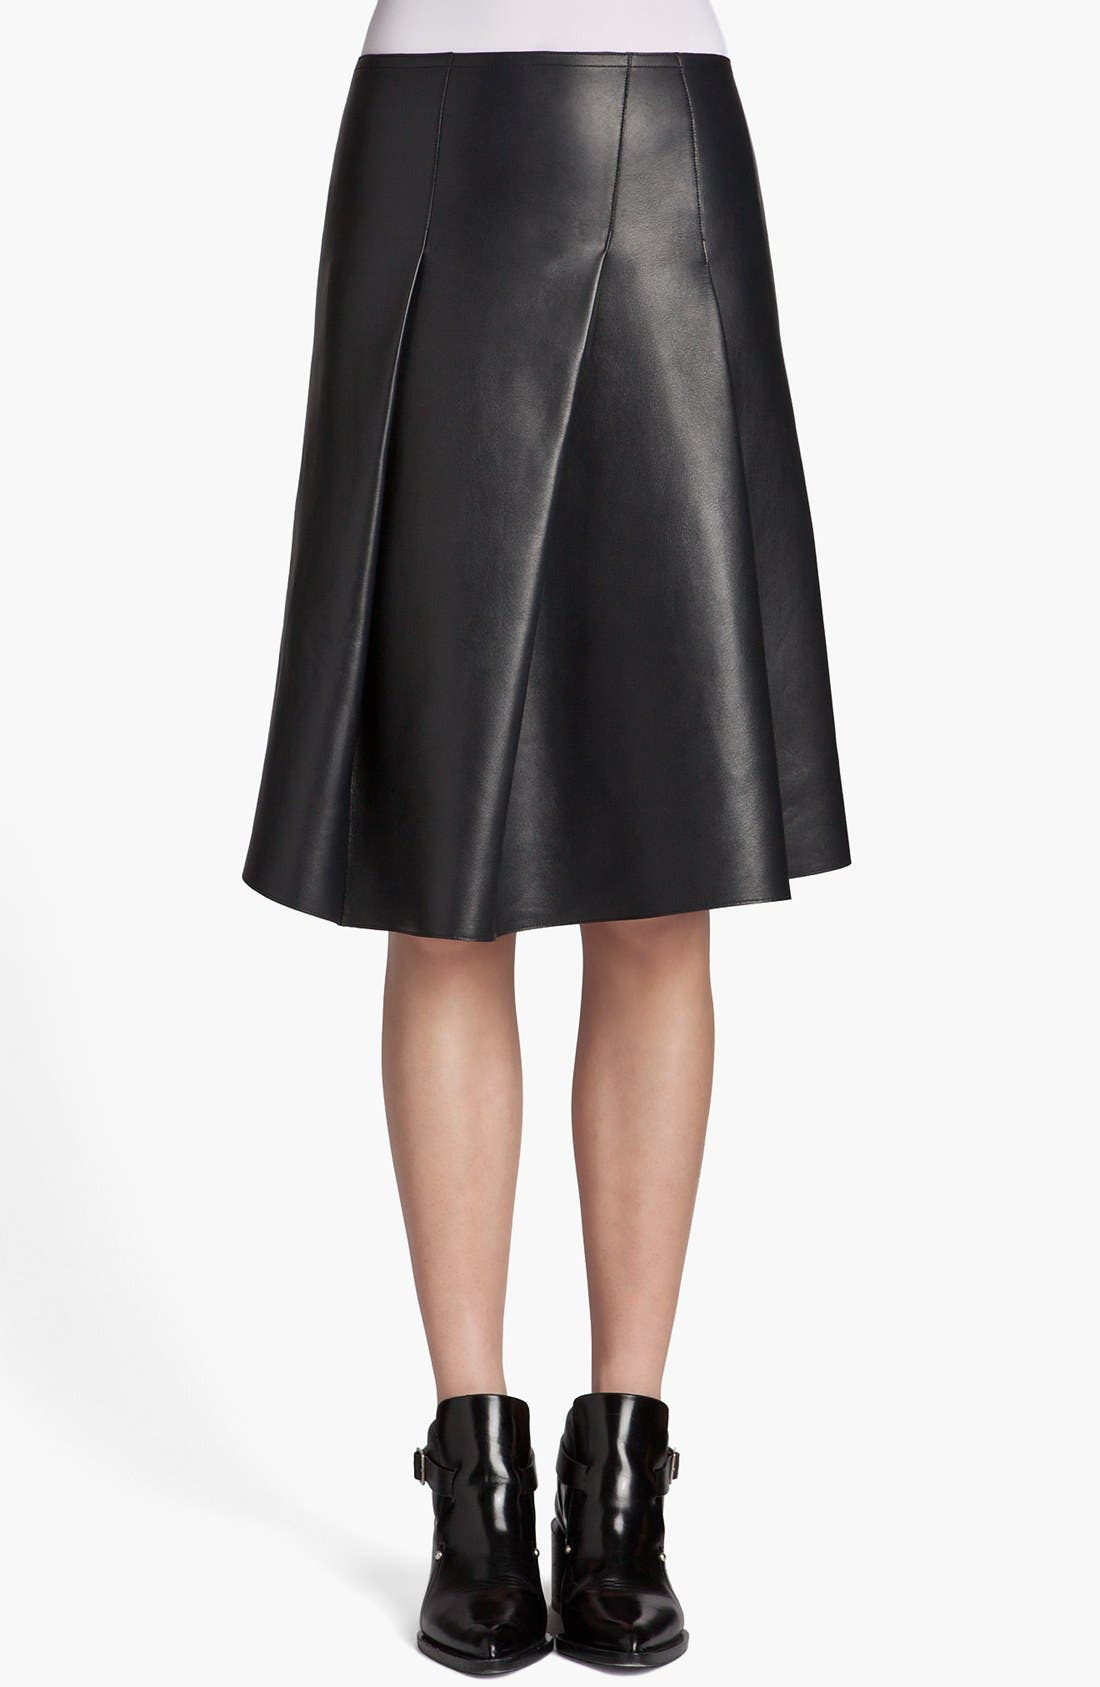 Alternate Image 1 Selected - Jil Sander 'Pom Pom' Pleated Leather Skirt